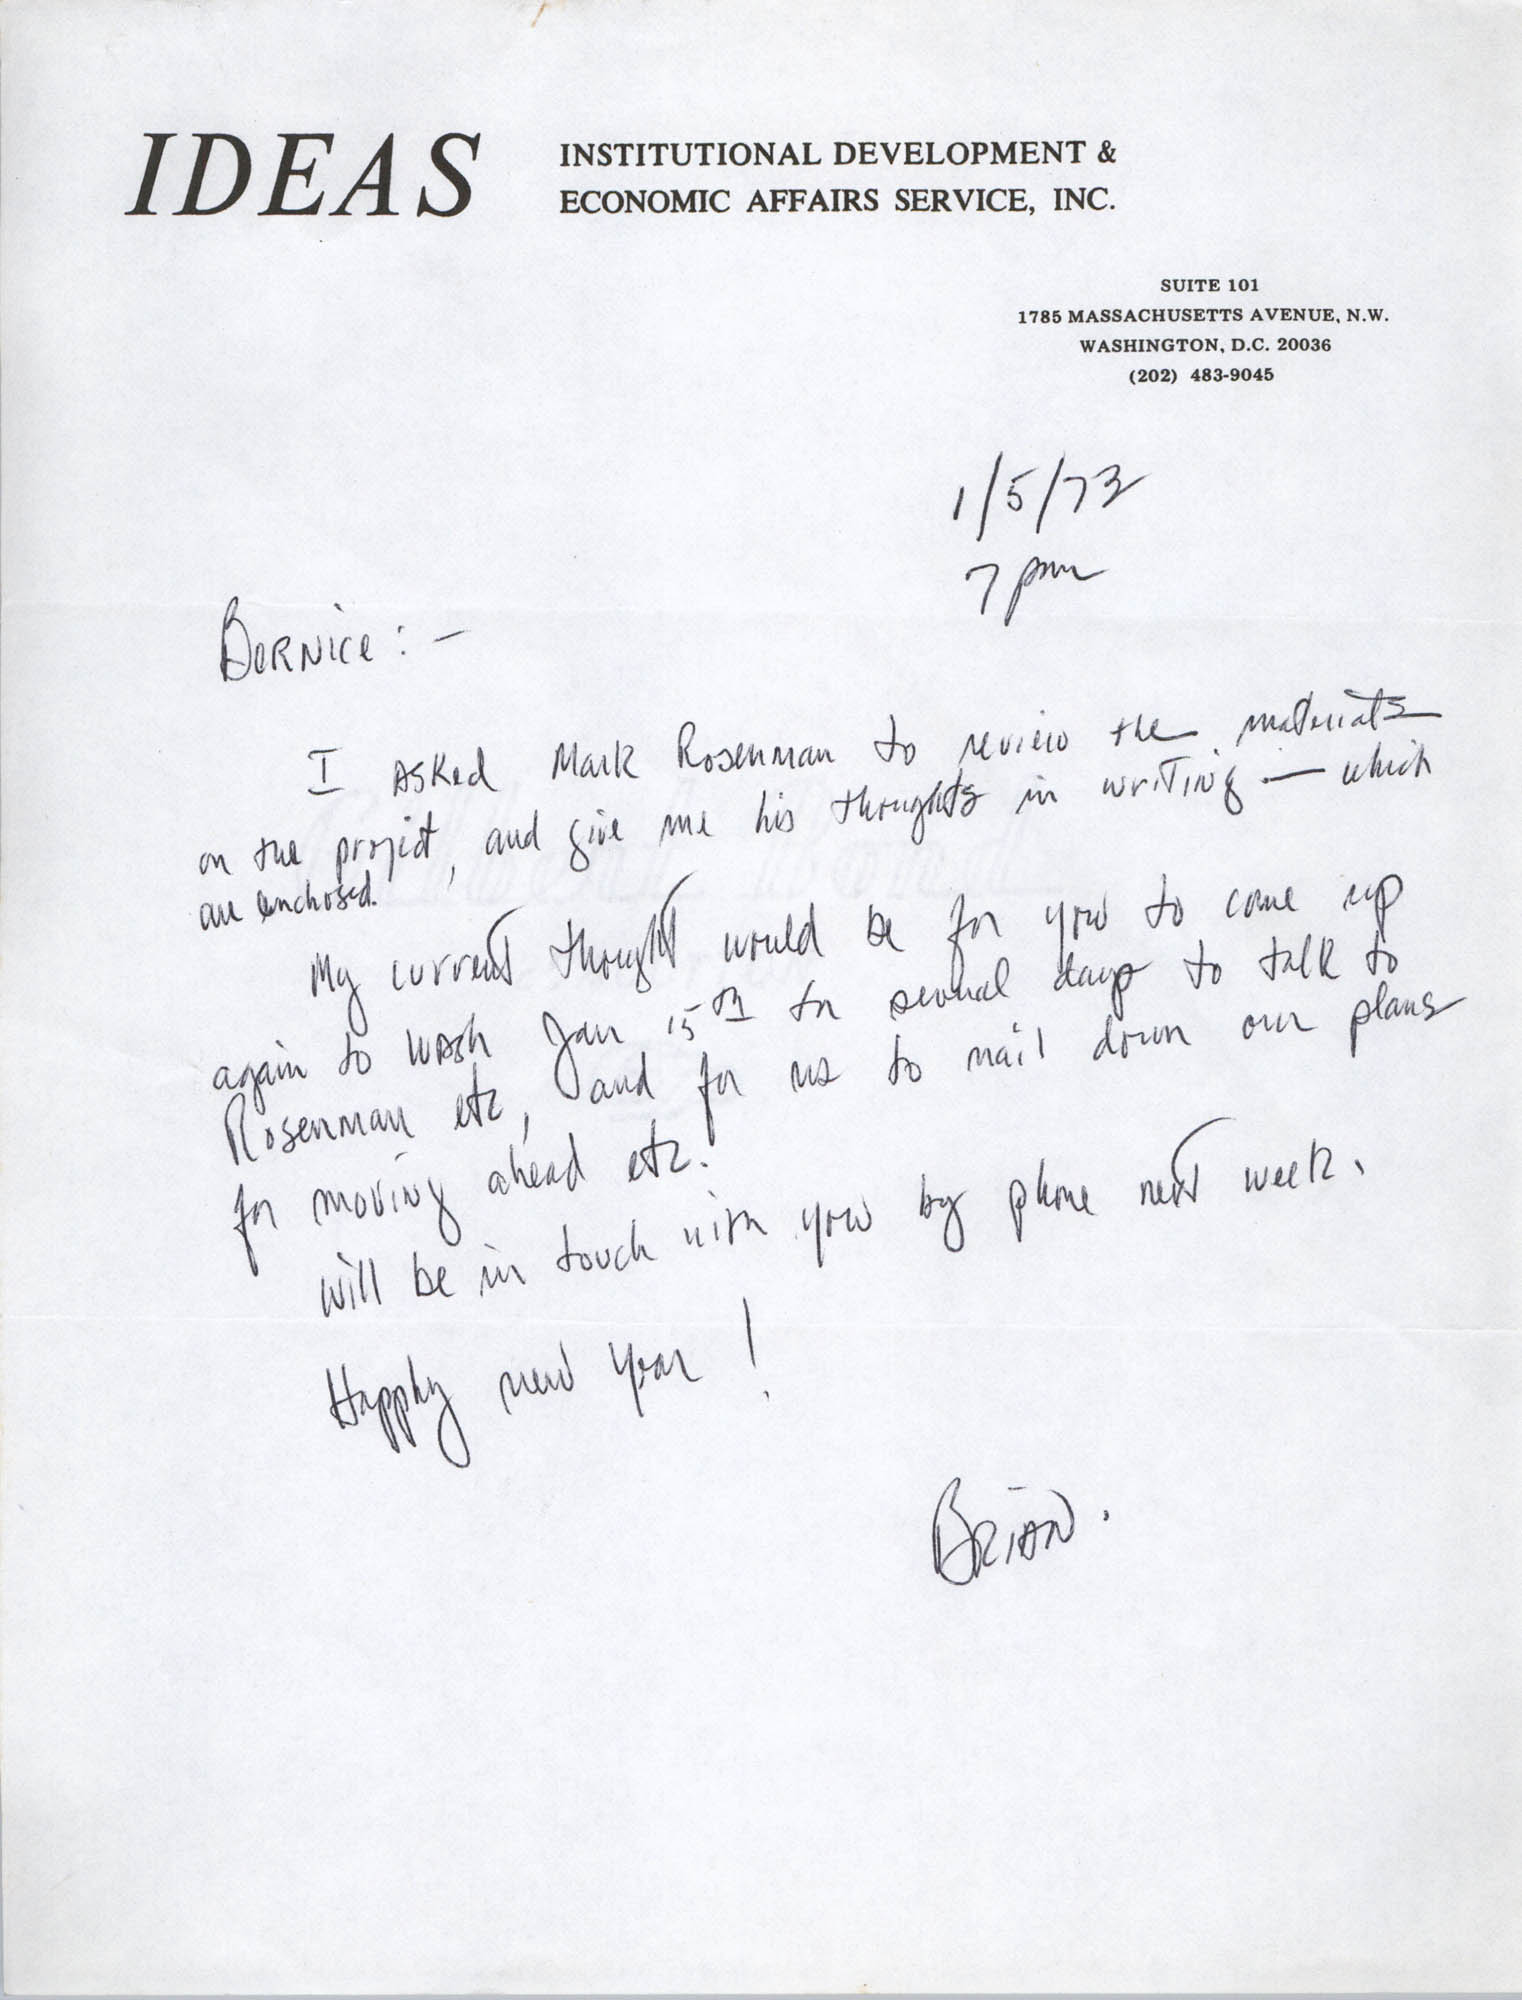 Letter from Brian Beun to Bernice Robinson, January 5, 1973